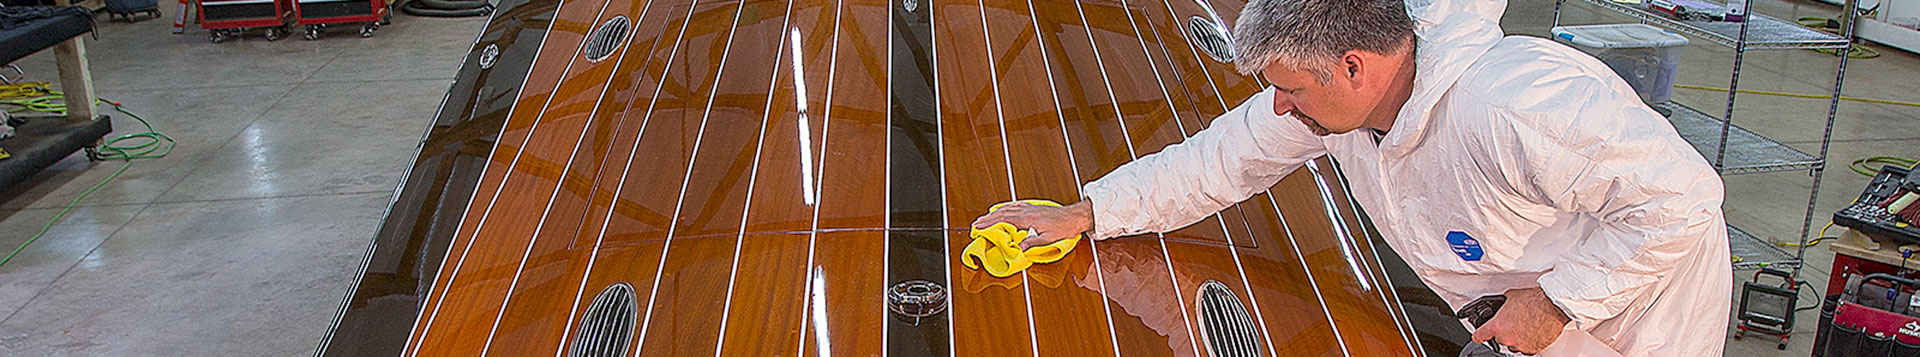 Coeur Customs can take care of your boat's exterior care and maintenance